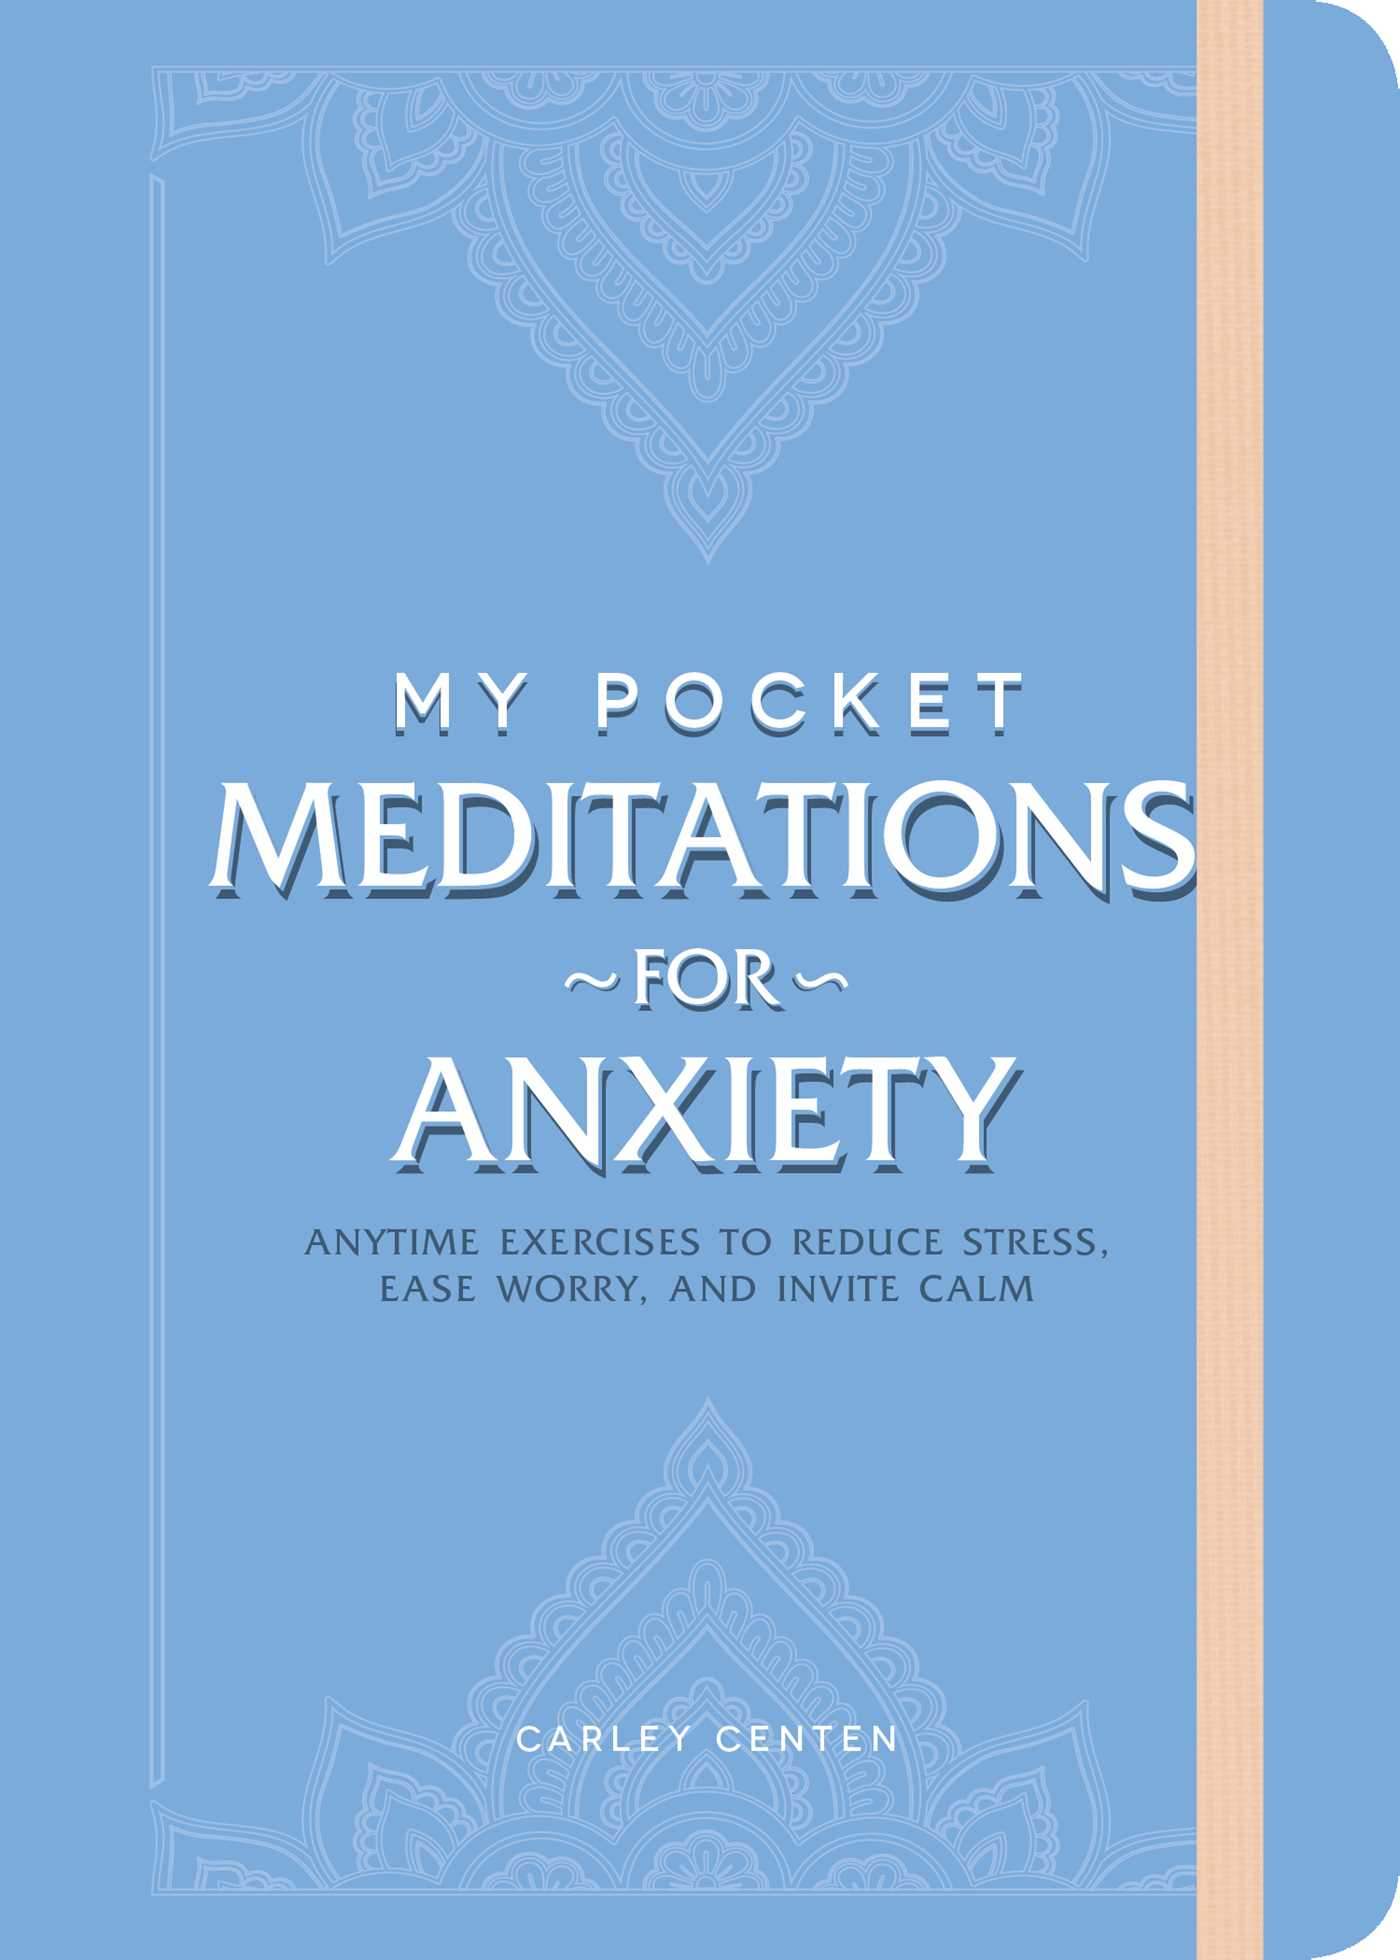 My Pocket Meditations for Anxiety: Anytime Exercises to Reduce Stress, Ease Worry, and Invite Calm